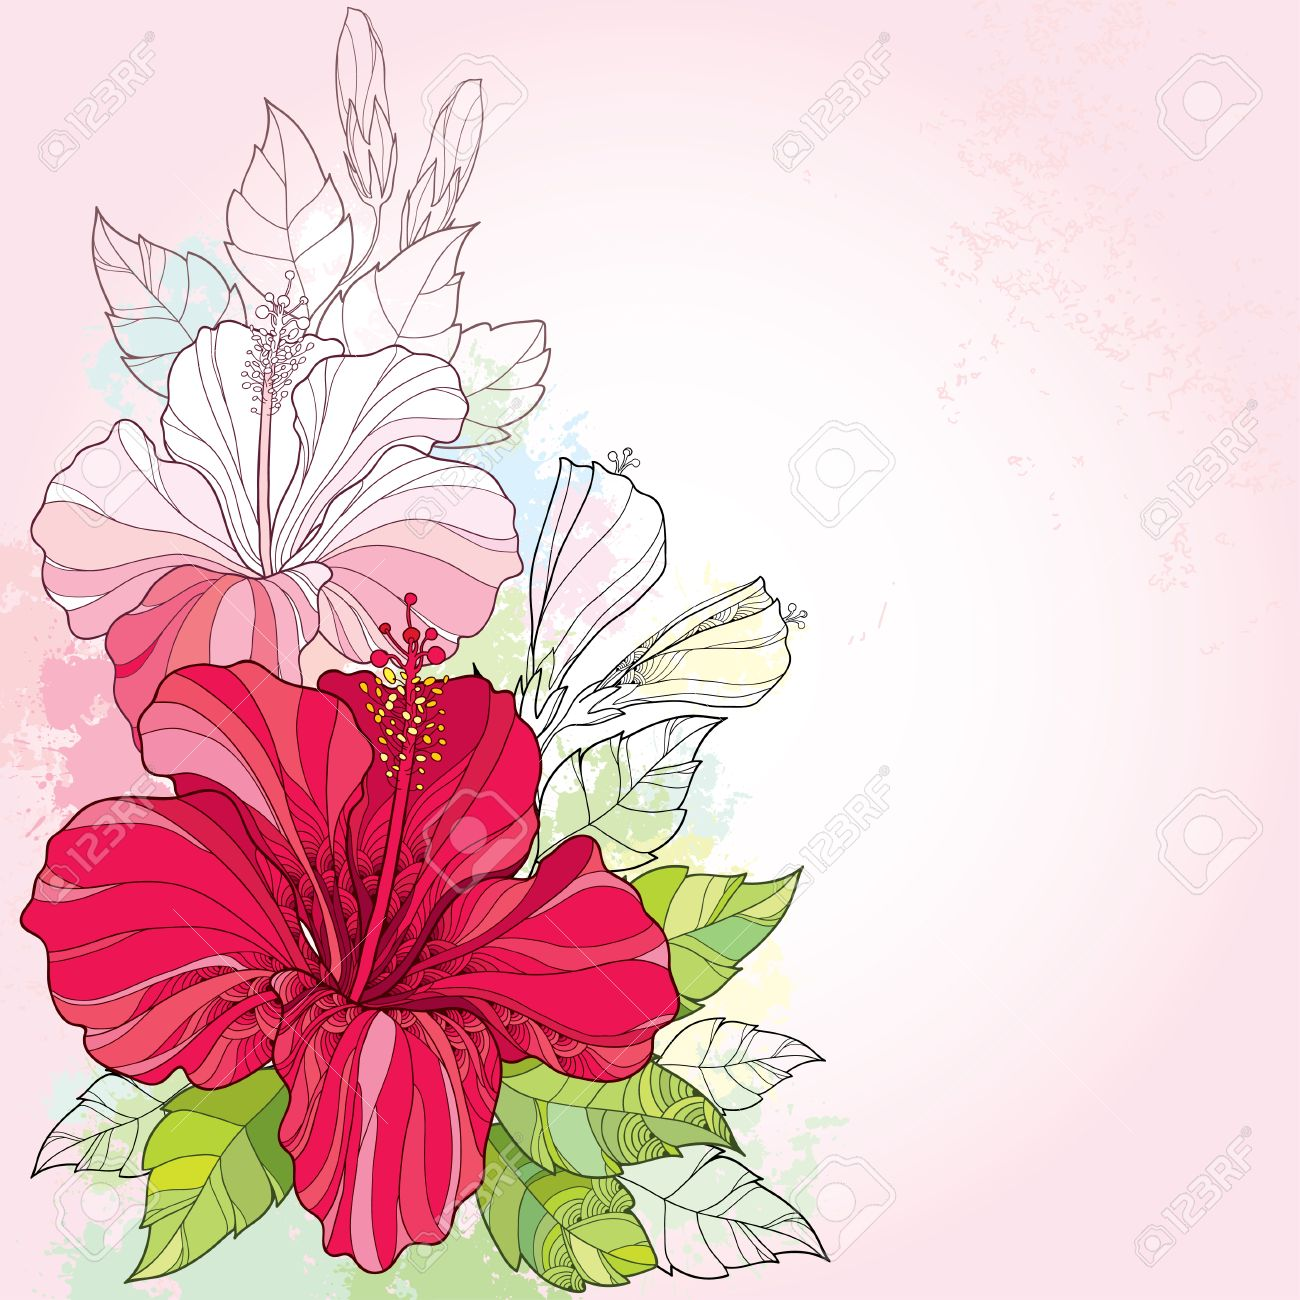 Bouquet With Chinese Hibiscus Or Rosa Sinensis And Leaves On The Pink Background